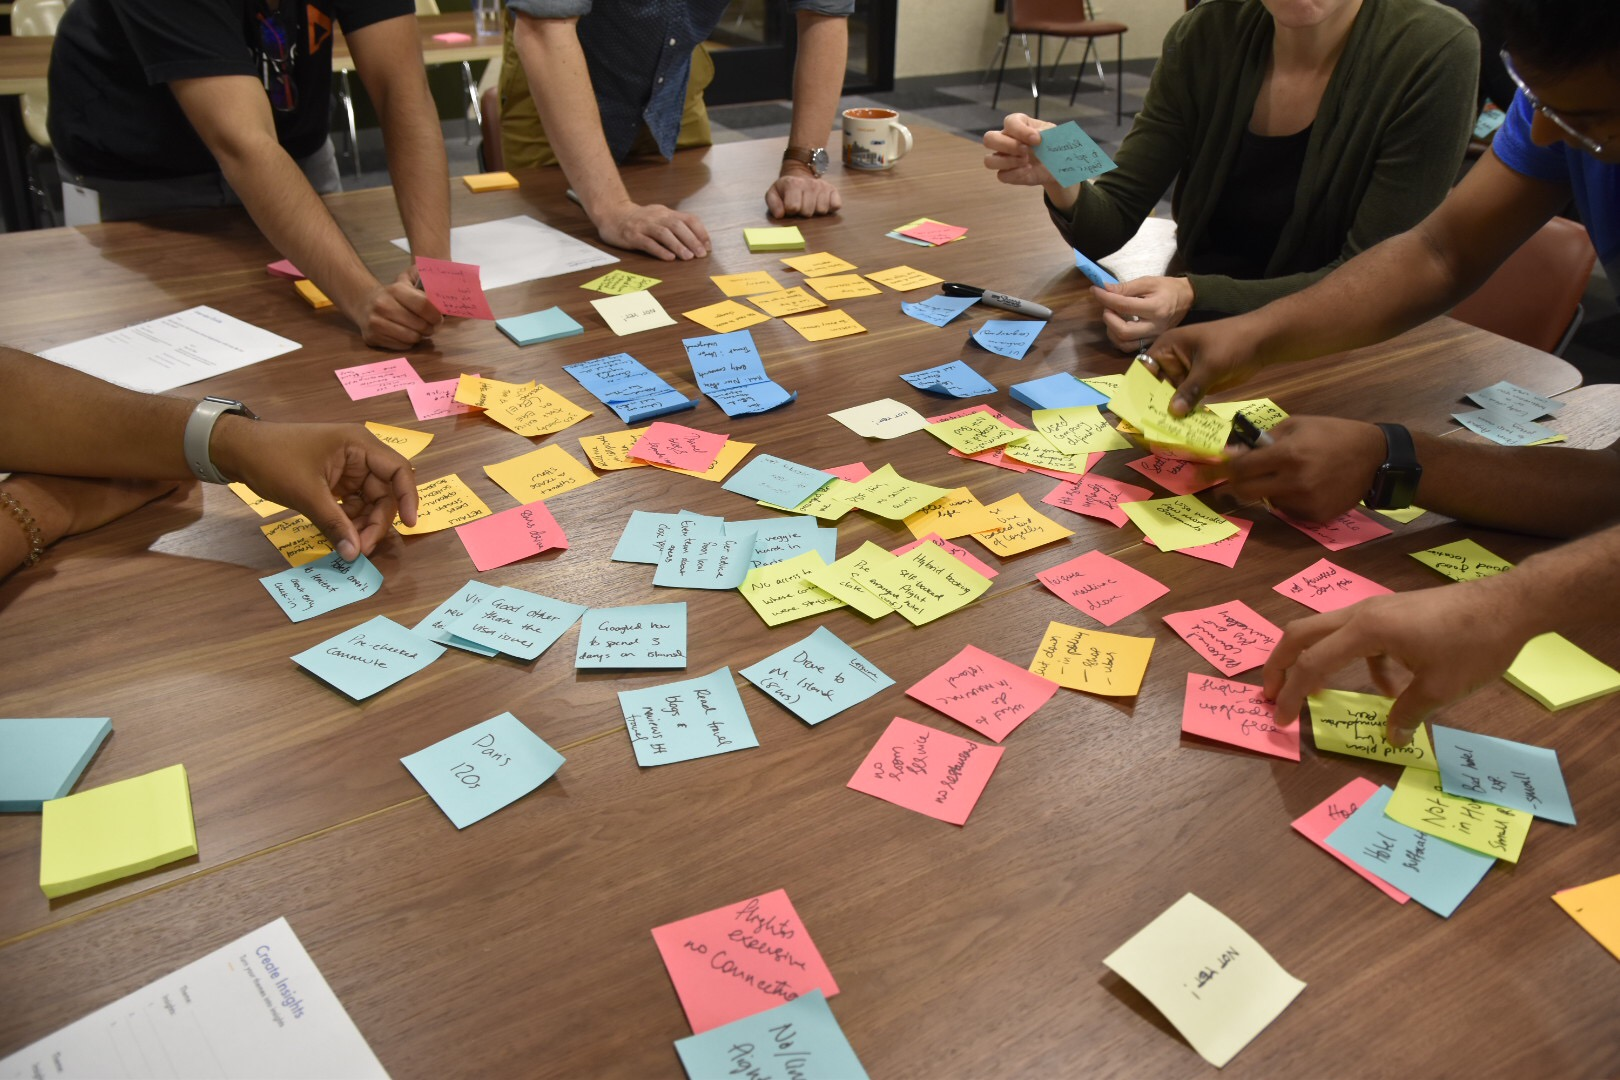 Dozens of multi-colored sticky notes spread across a table